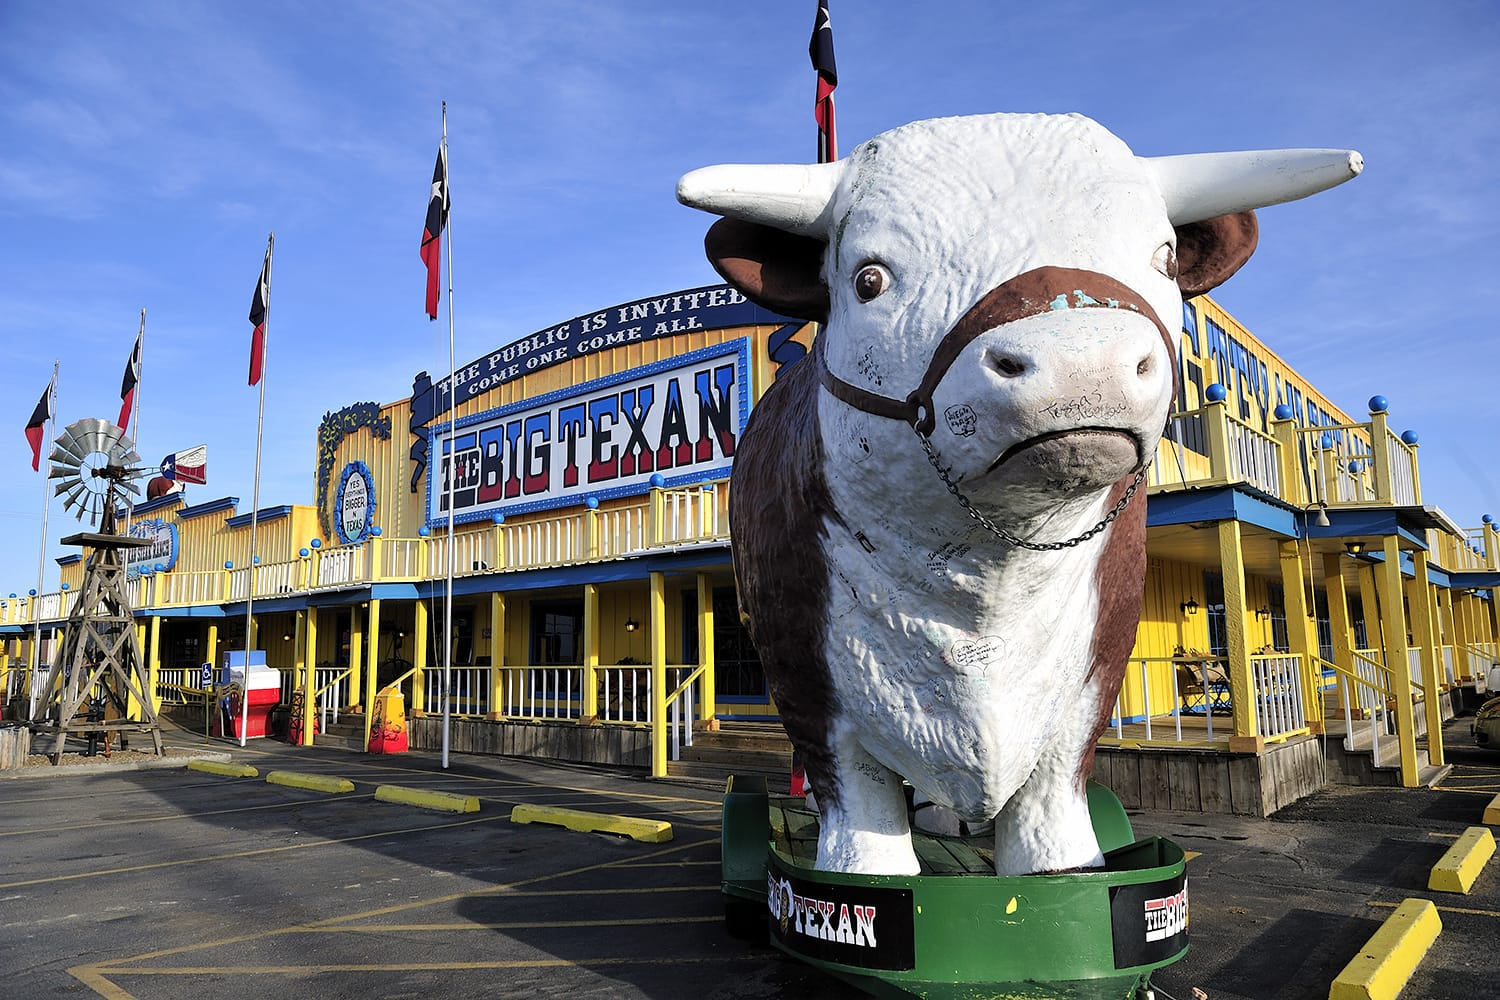 Big Texan Steak Ranch, famous steakhouse restaurant and motel located in Amarillo, Texas, which opened on the previous U.S. Route 66